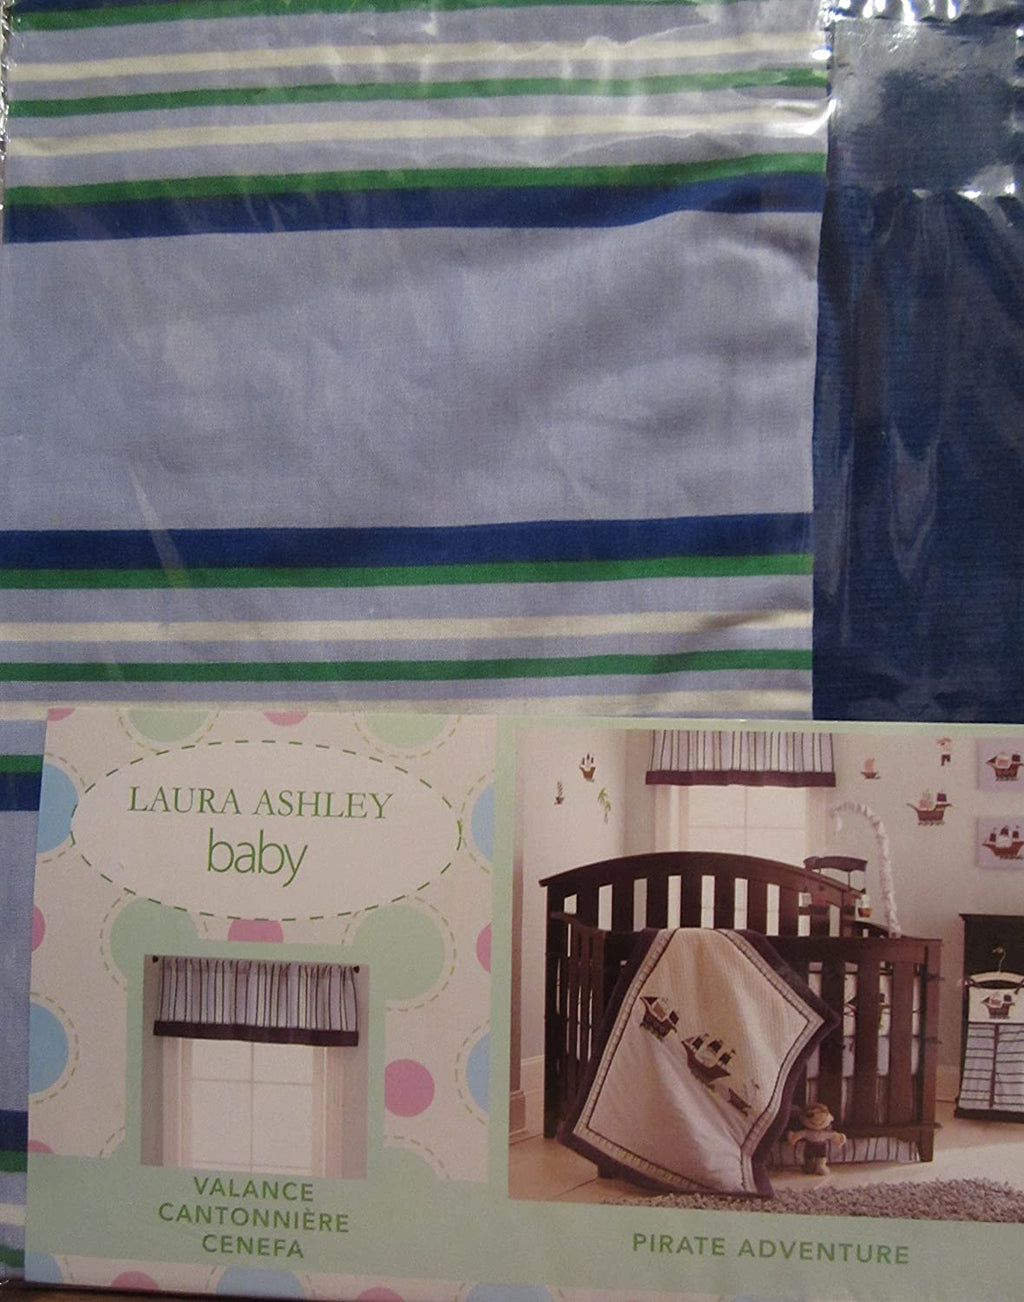 Laura Ashley® Pirate Adventure Blue Green White Striped Window Valance- Limited to 1 per customer